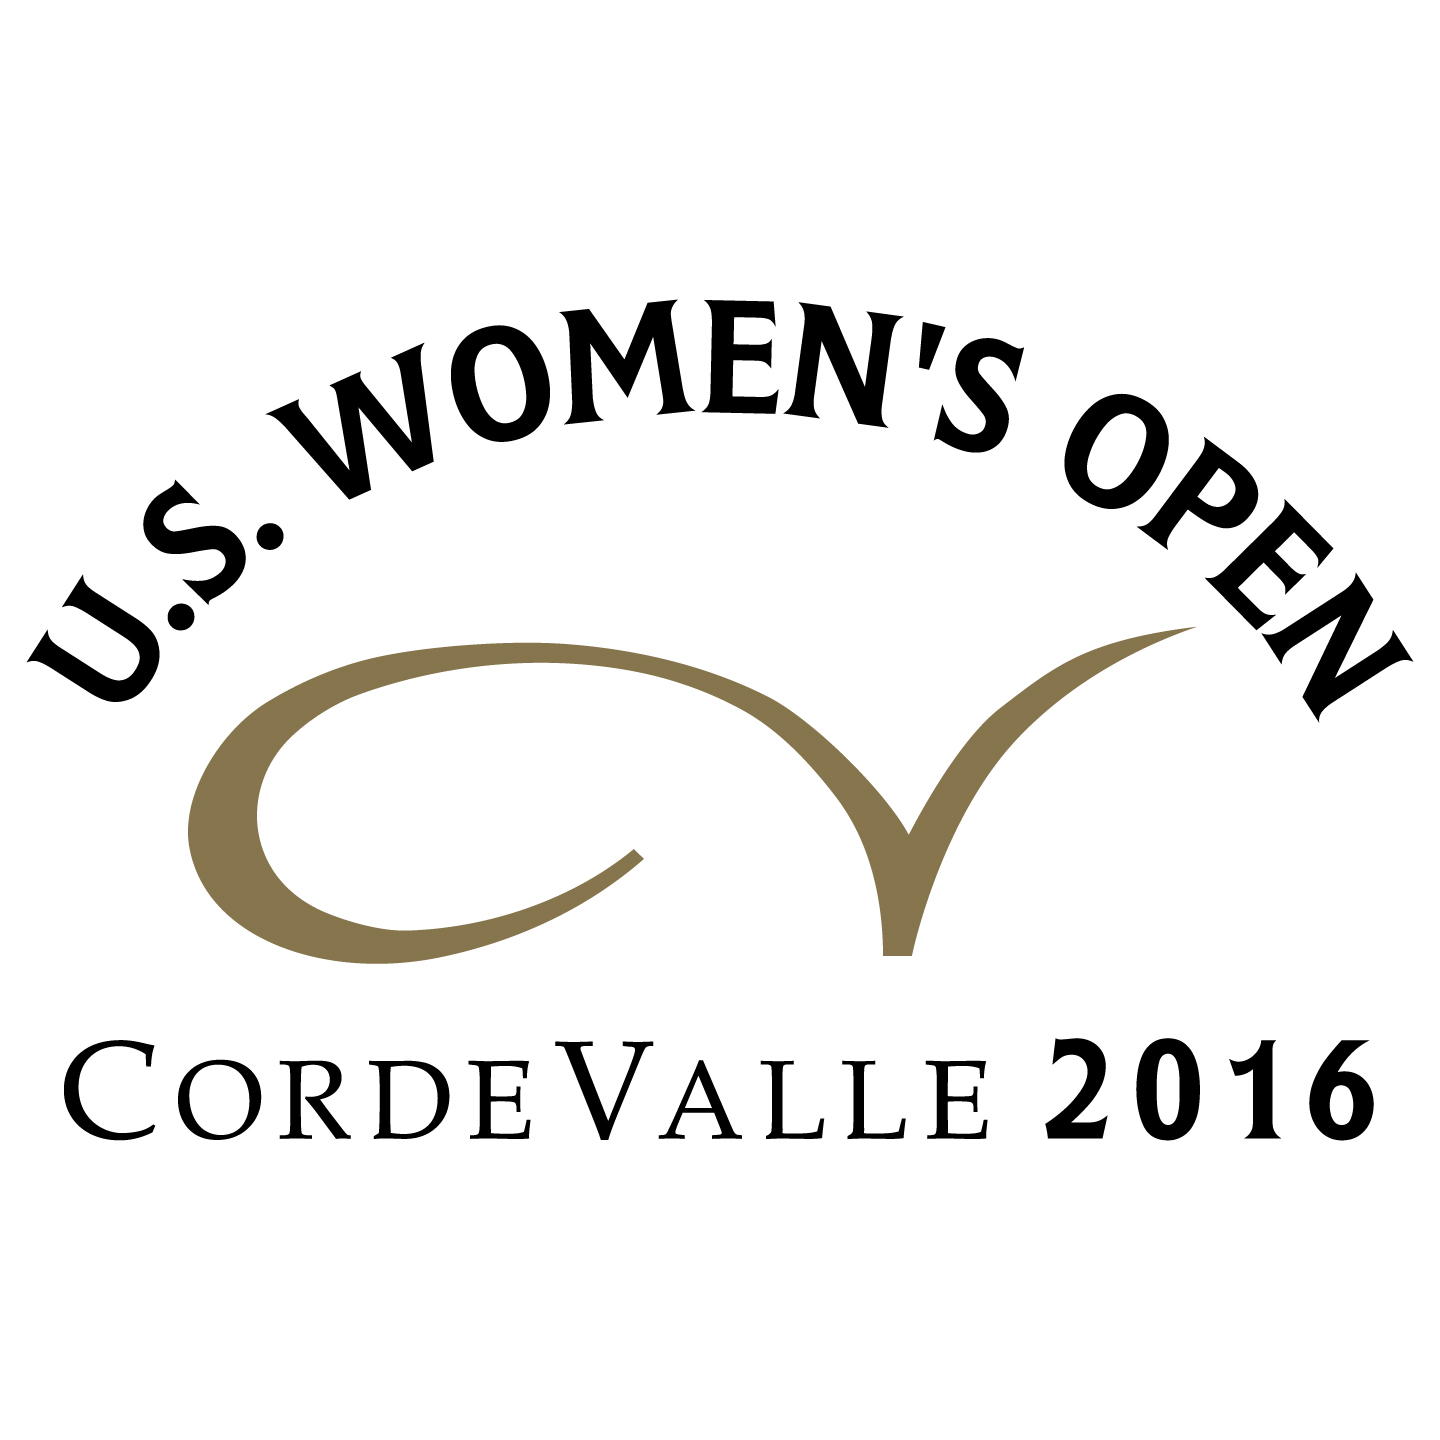 Cordevalle Golf Club Announces Early Sales Of Hospitality